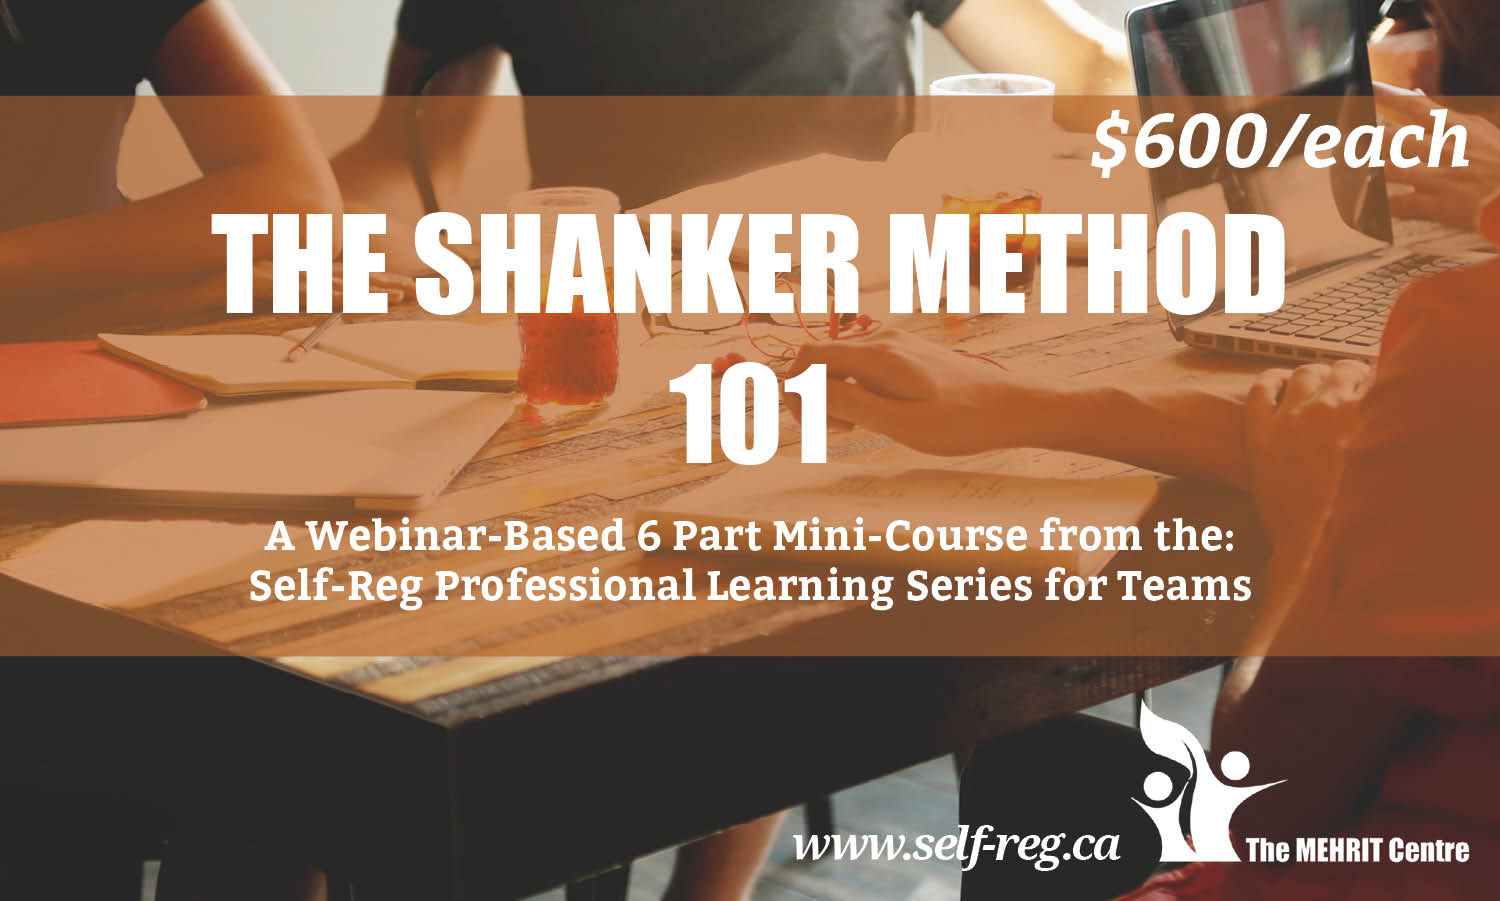 The Shanker Method 101: A Professional Learning Series